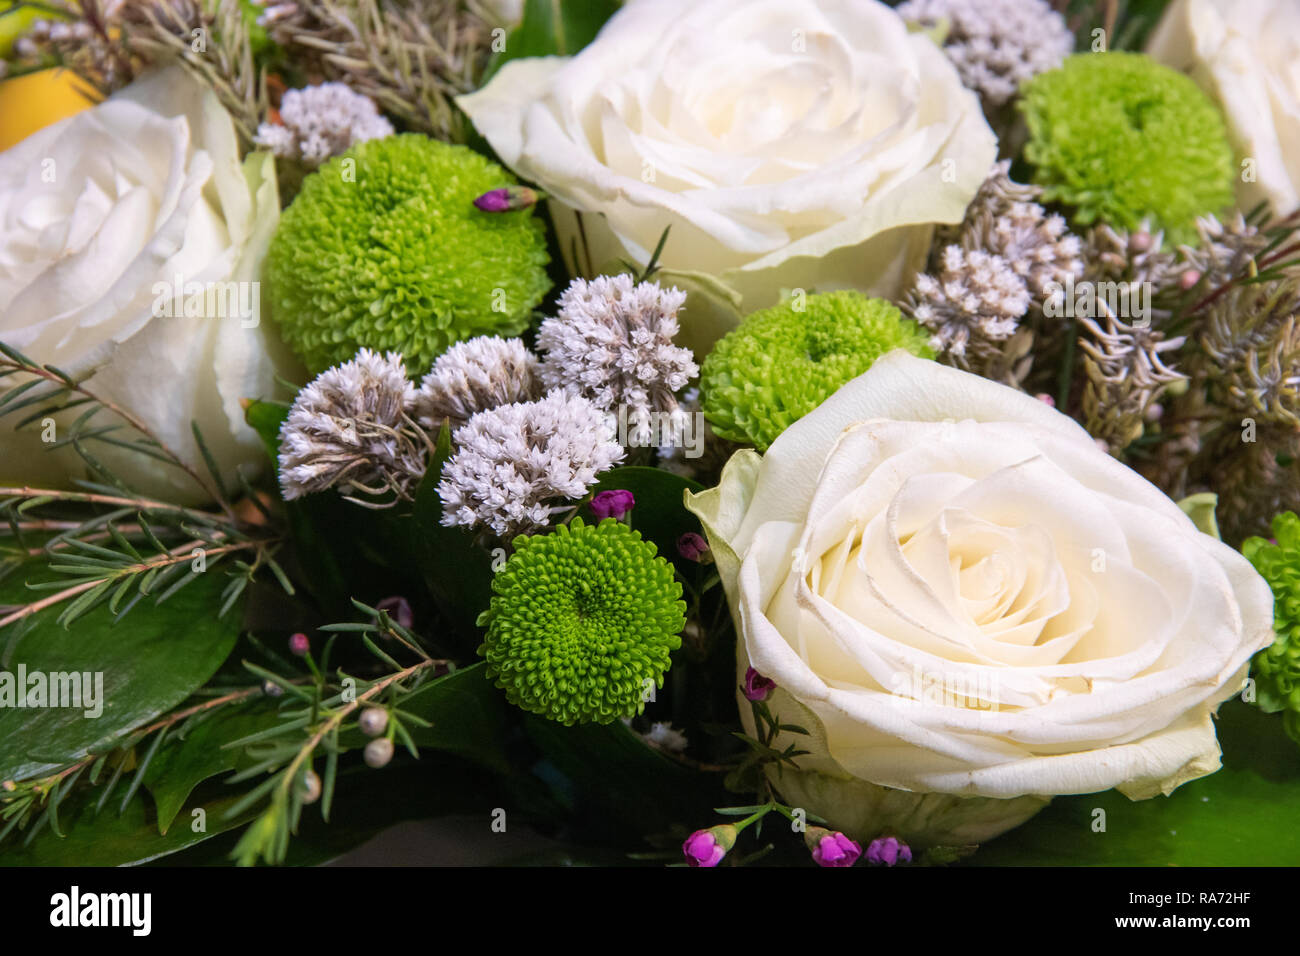 bb7733d503b Beautiful bouquet of flowers with white ranunculus buttercup, green ...